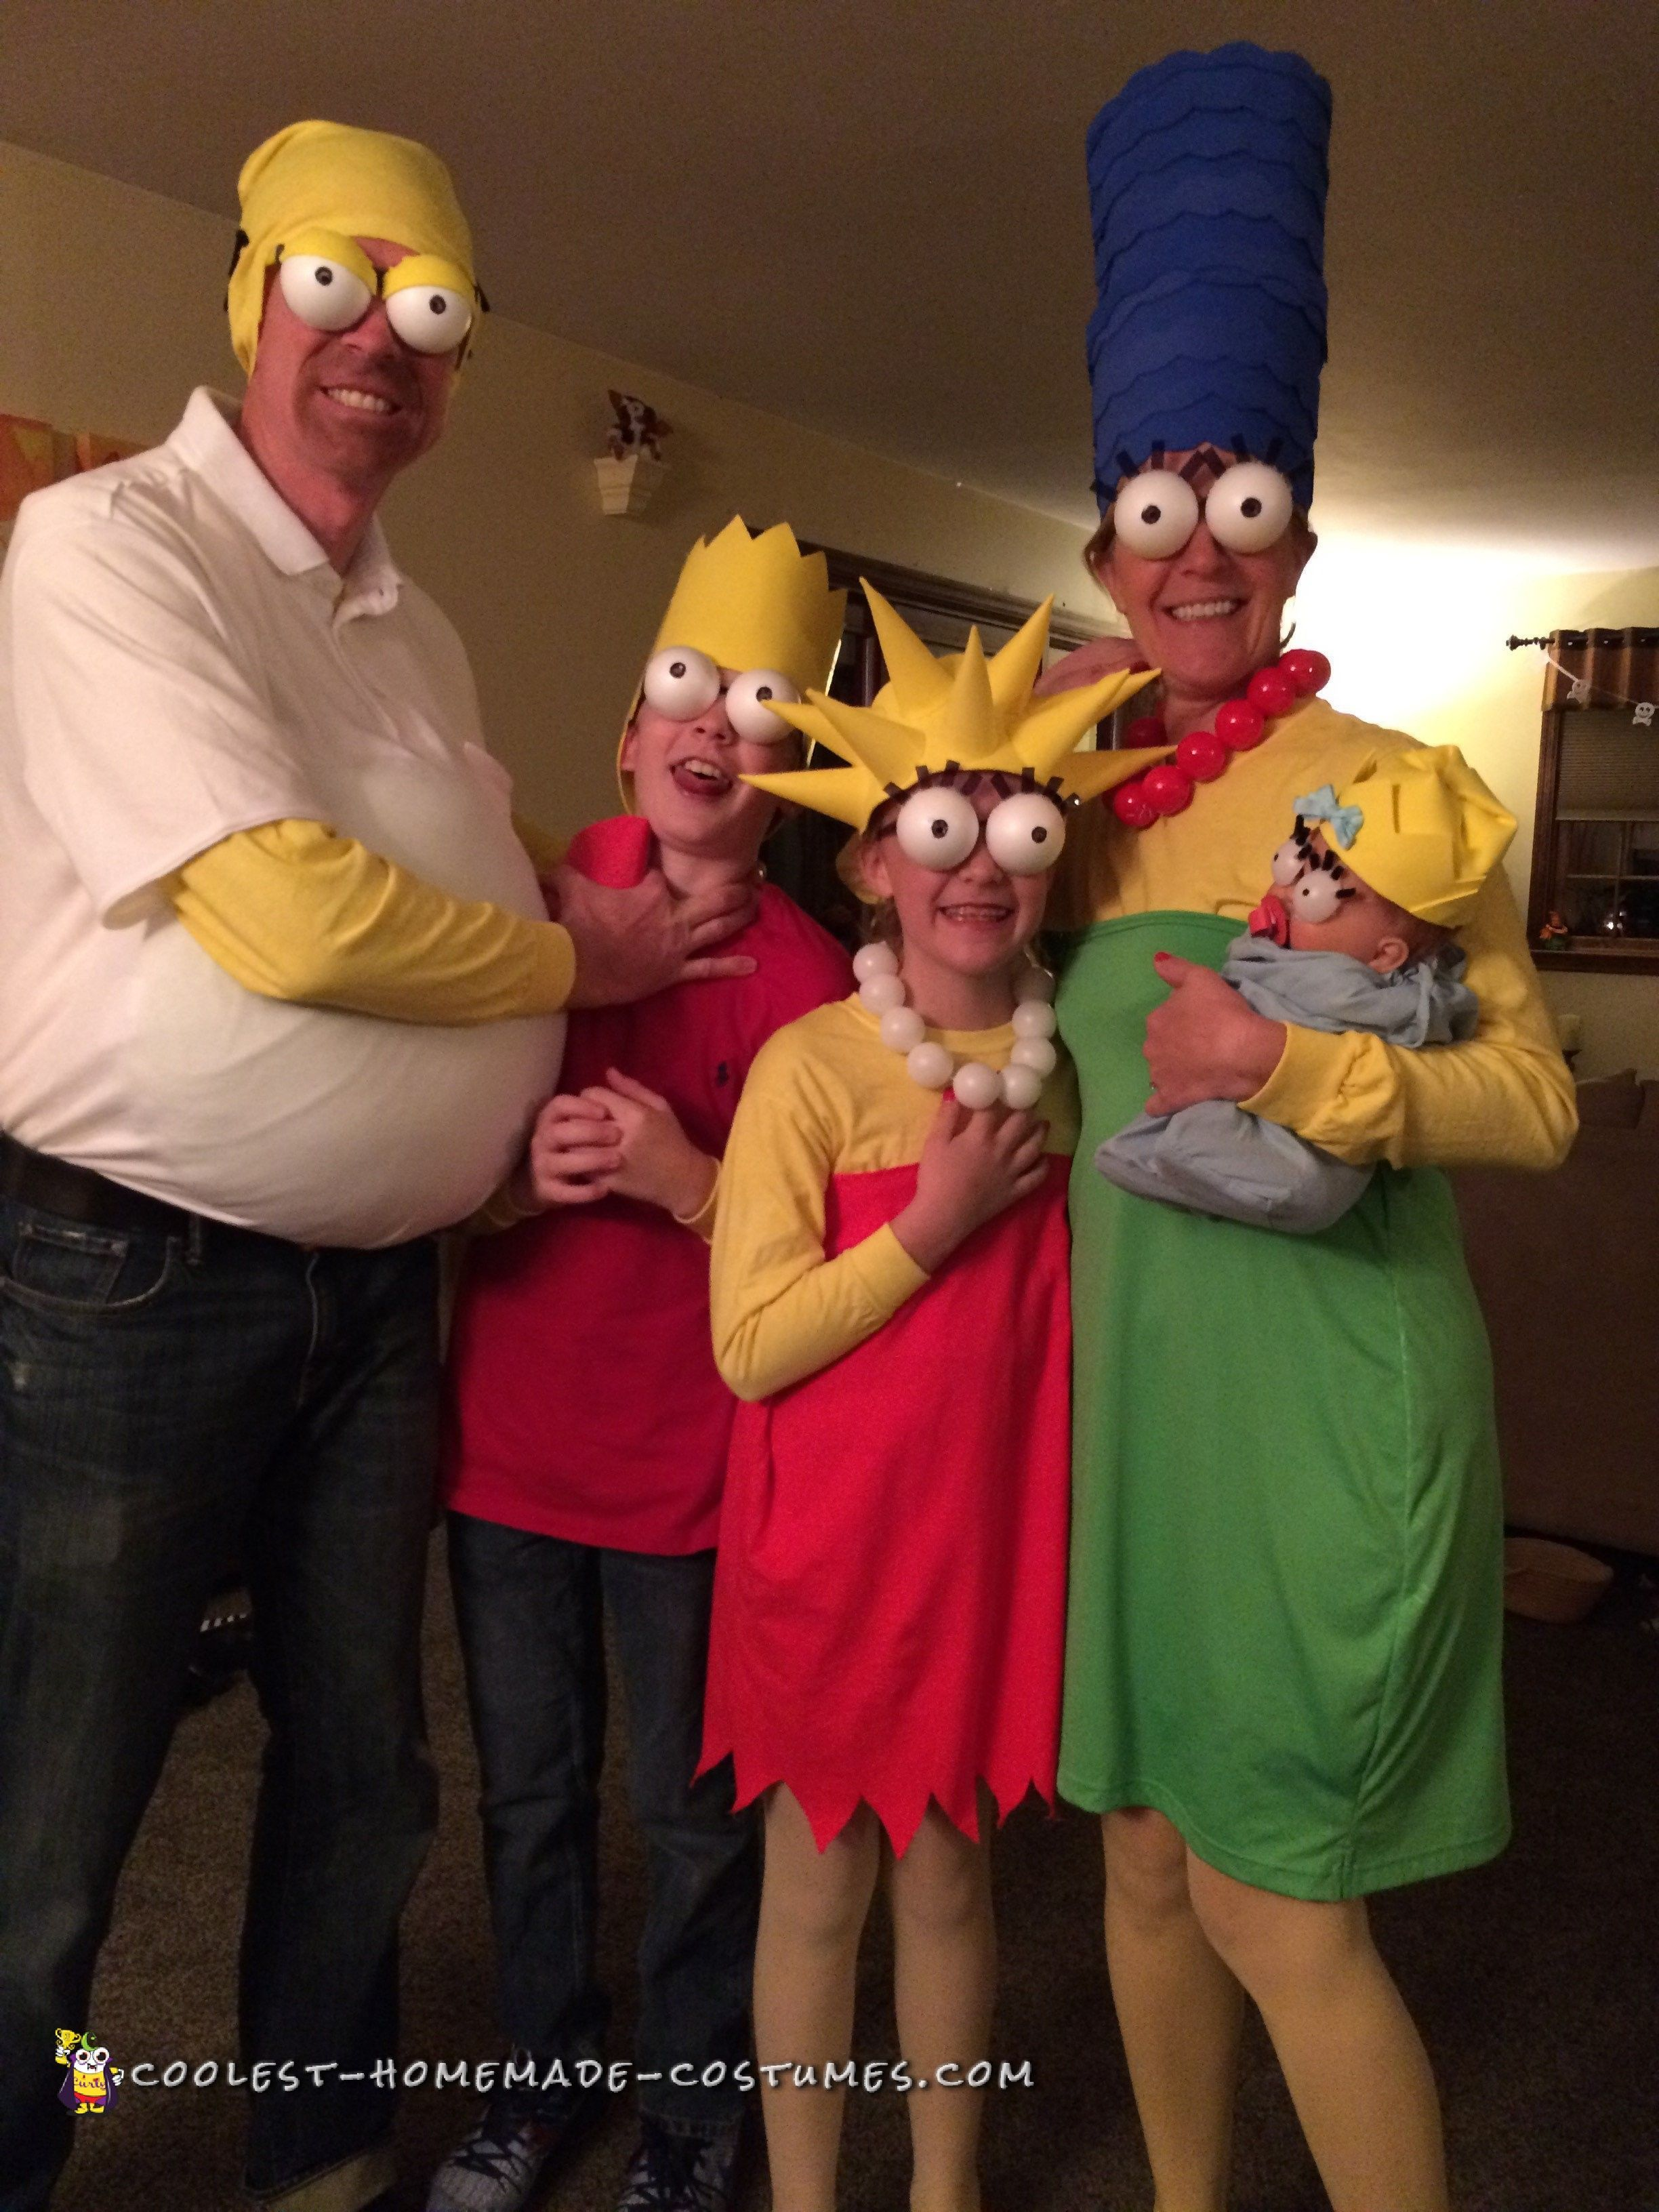 coolest diy simpsons family costumes | homemade costumes, costumes